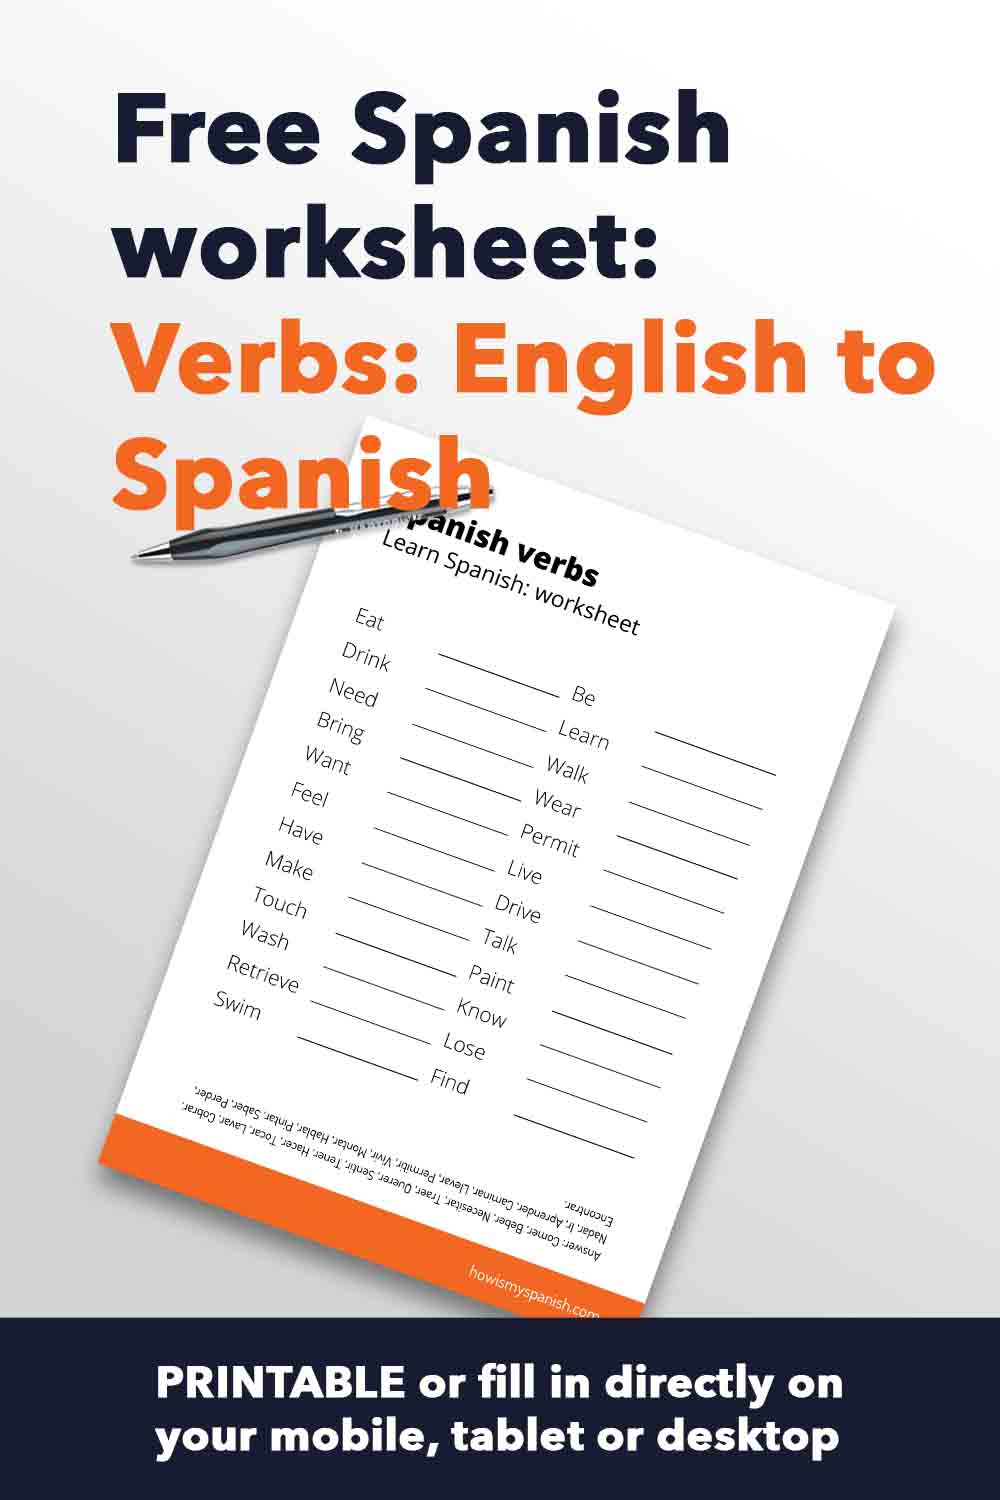 Spanish worksheet verbs English to spanish